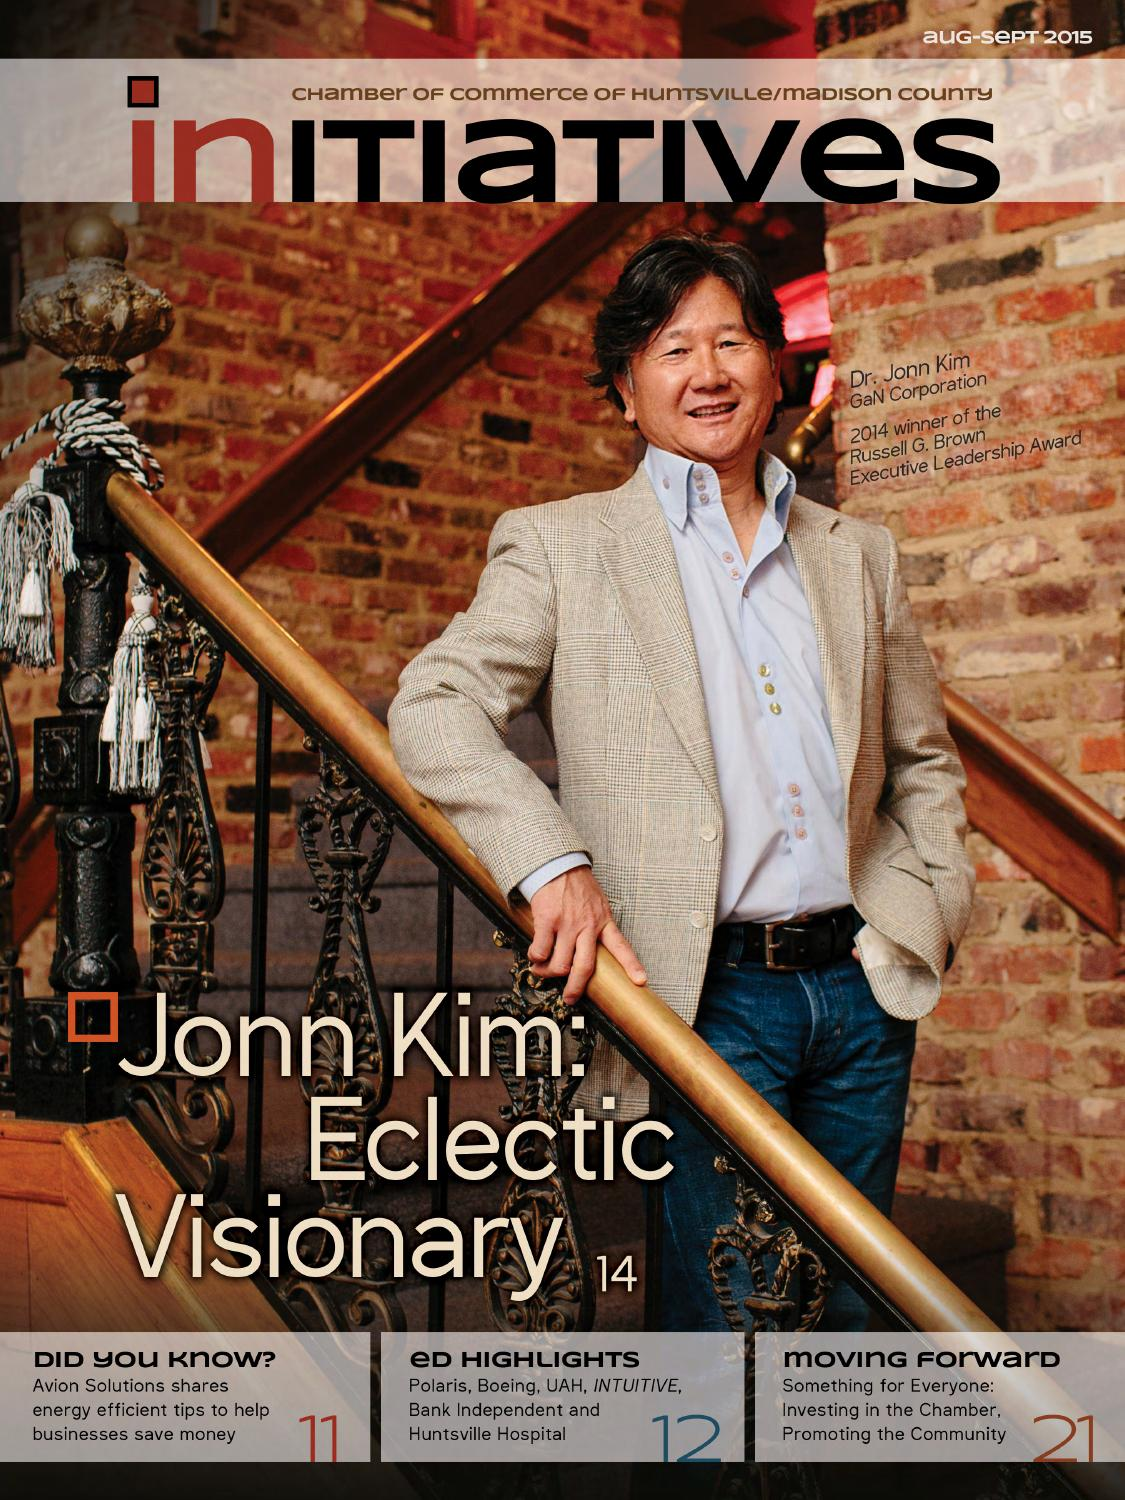 Initiatives magazine, August 2015 by Huntsville/Madison